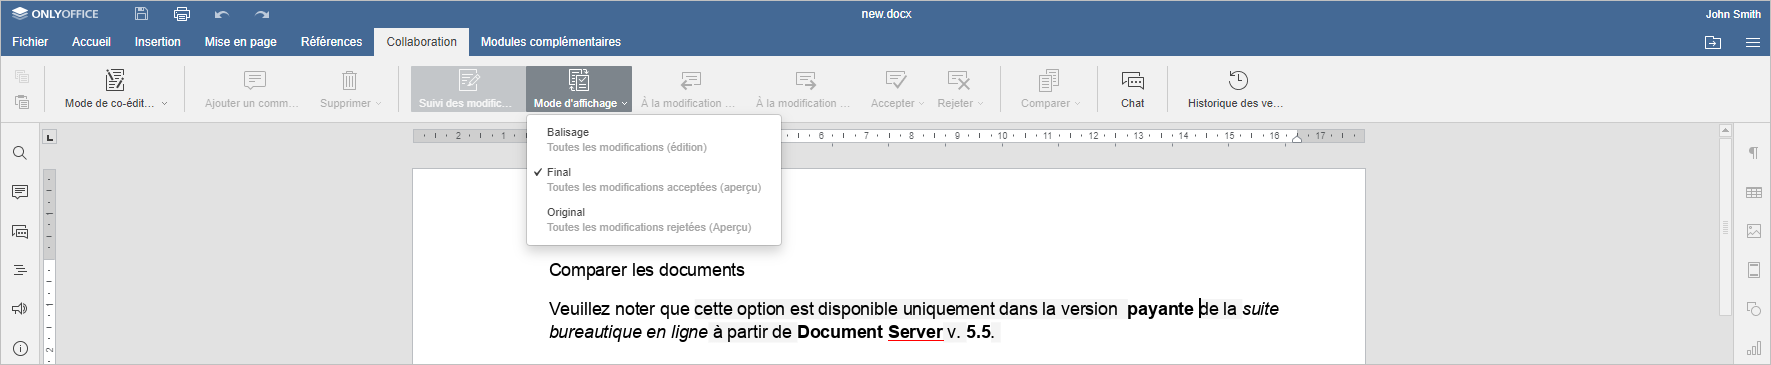 Comparer les document - Final